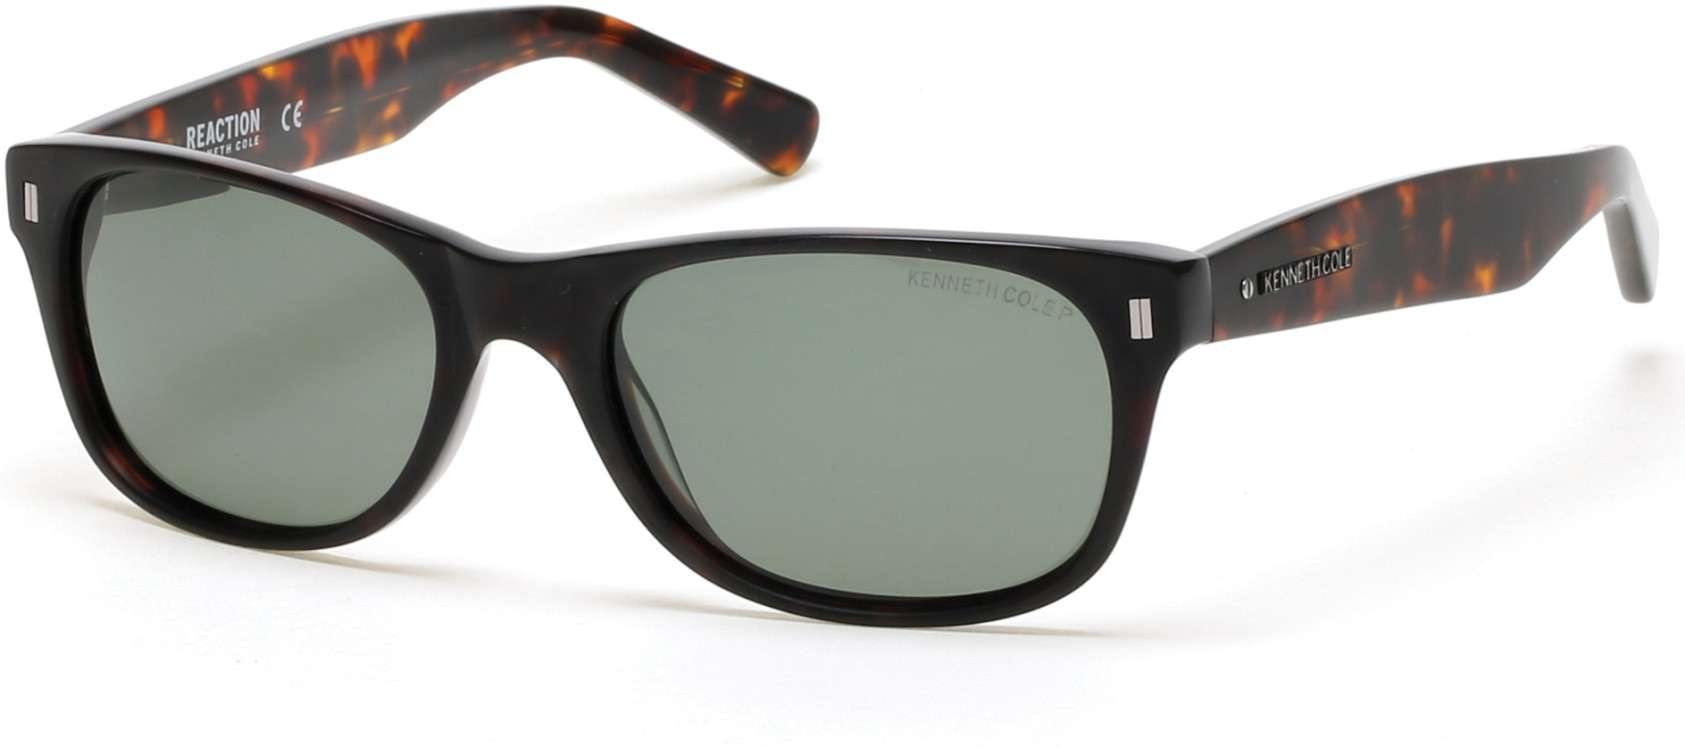 dark havana / green polarized